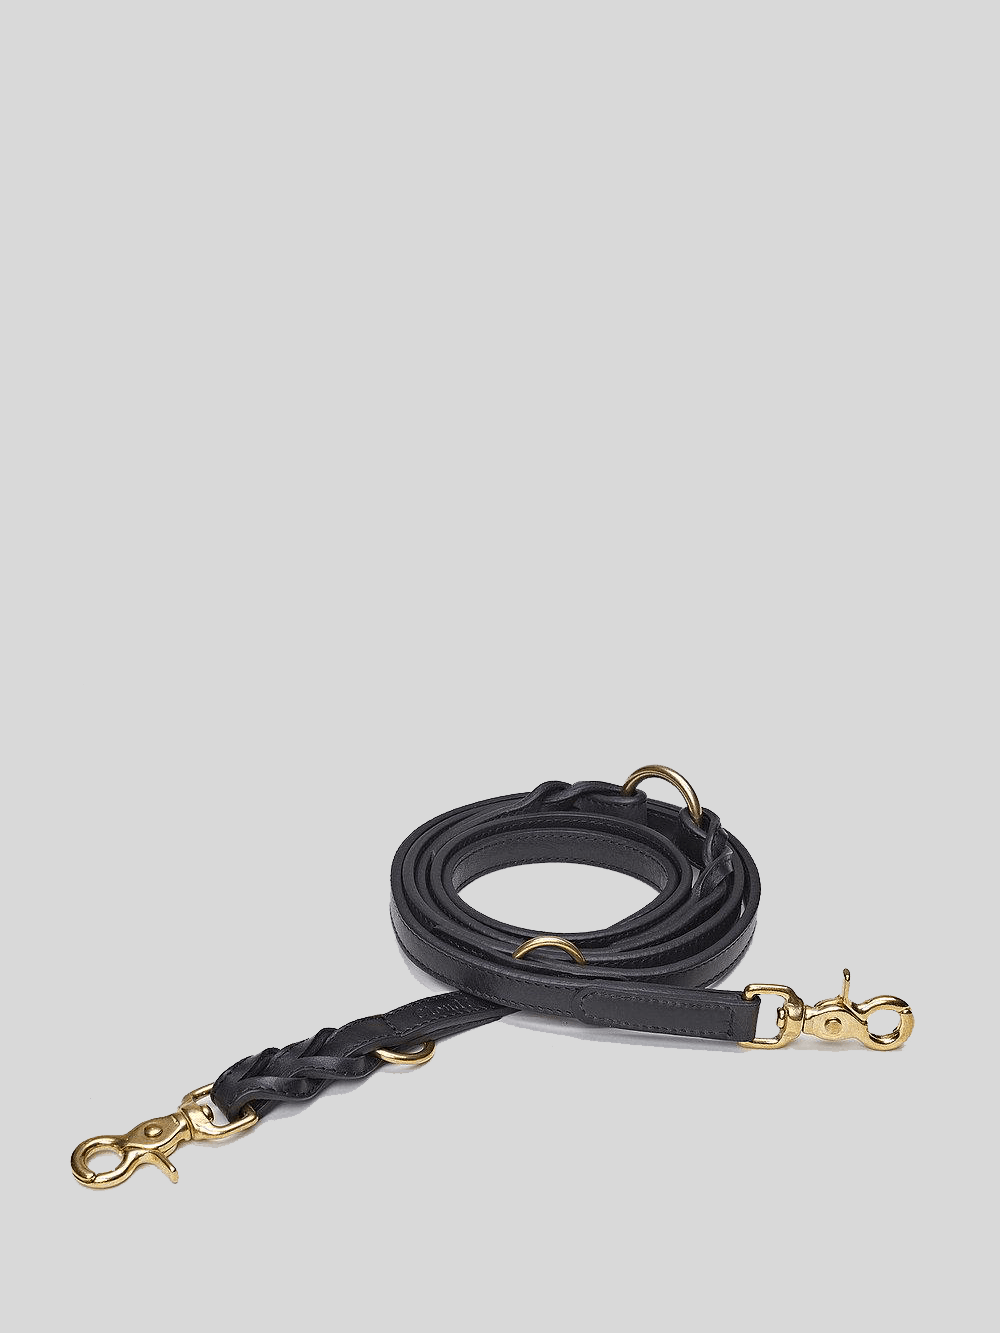 Dog Leash - Hyde Park Black Dog Leash Cloud7